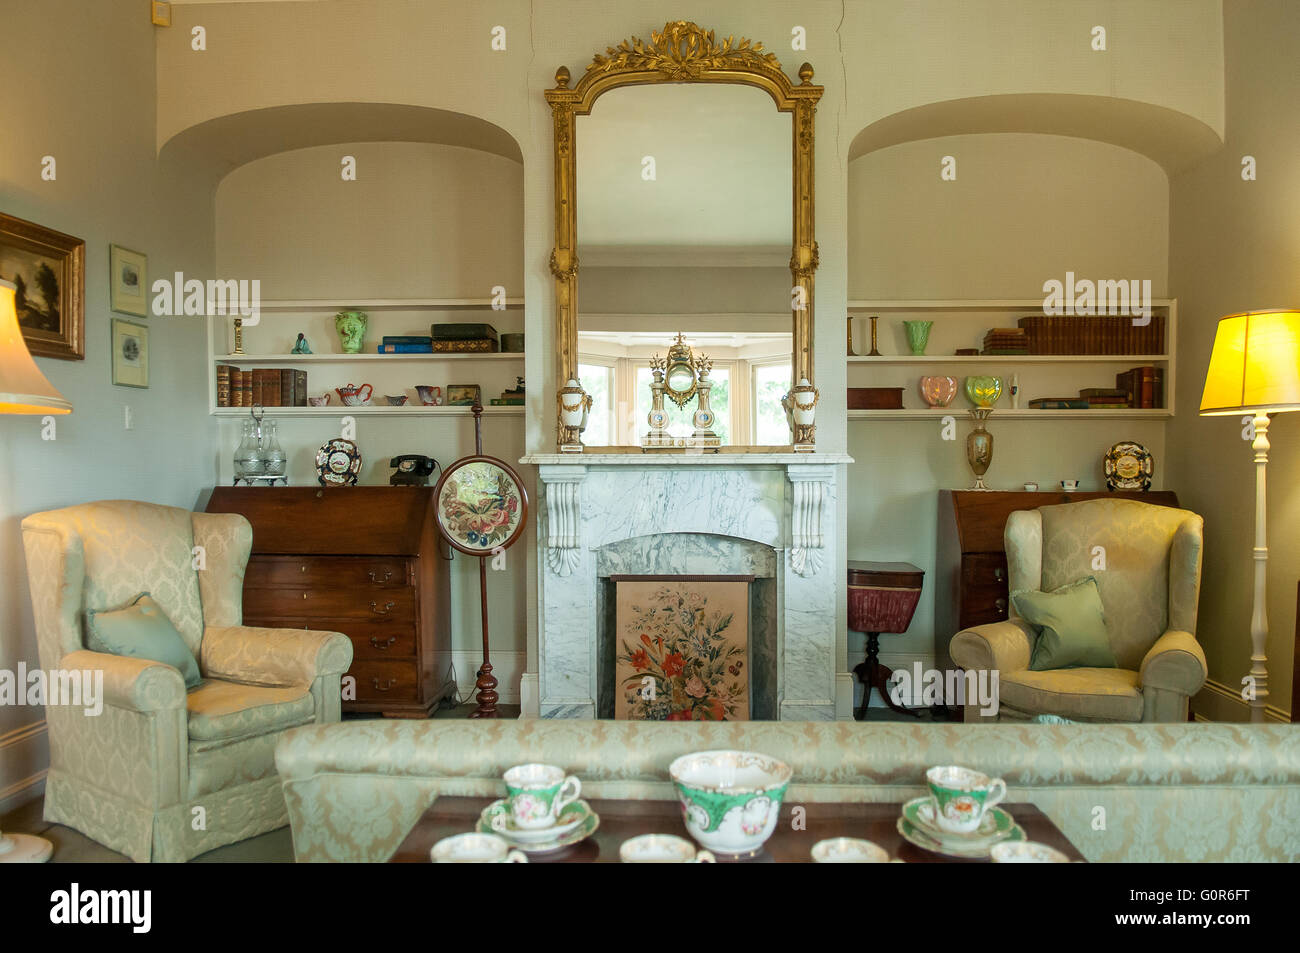 Sitting Room, The Heights Heritage House, Newtown, Victoria, Australia - Stock Image